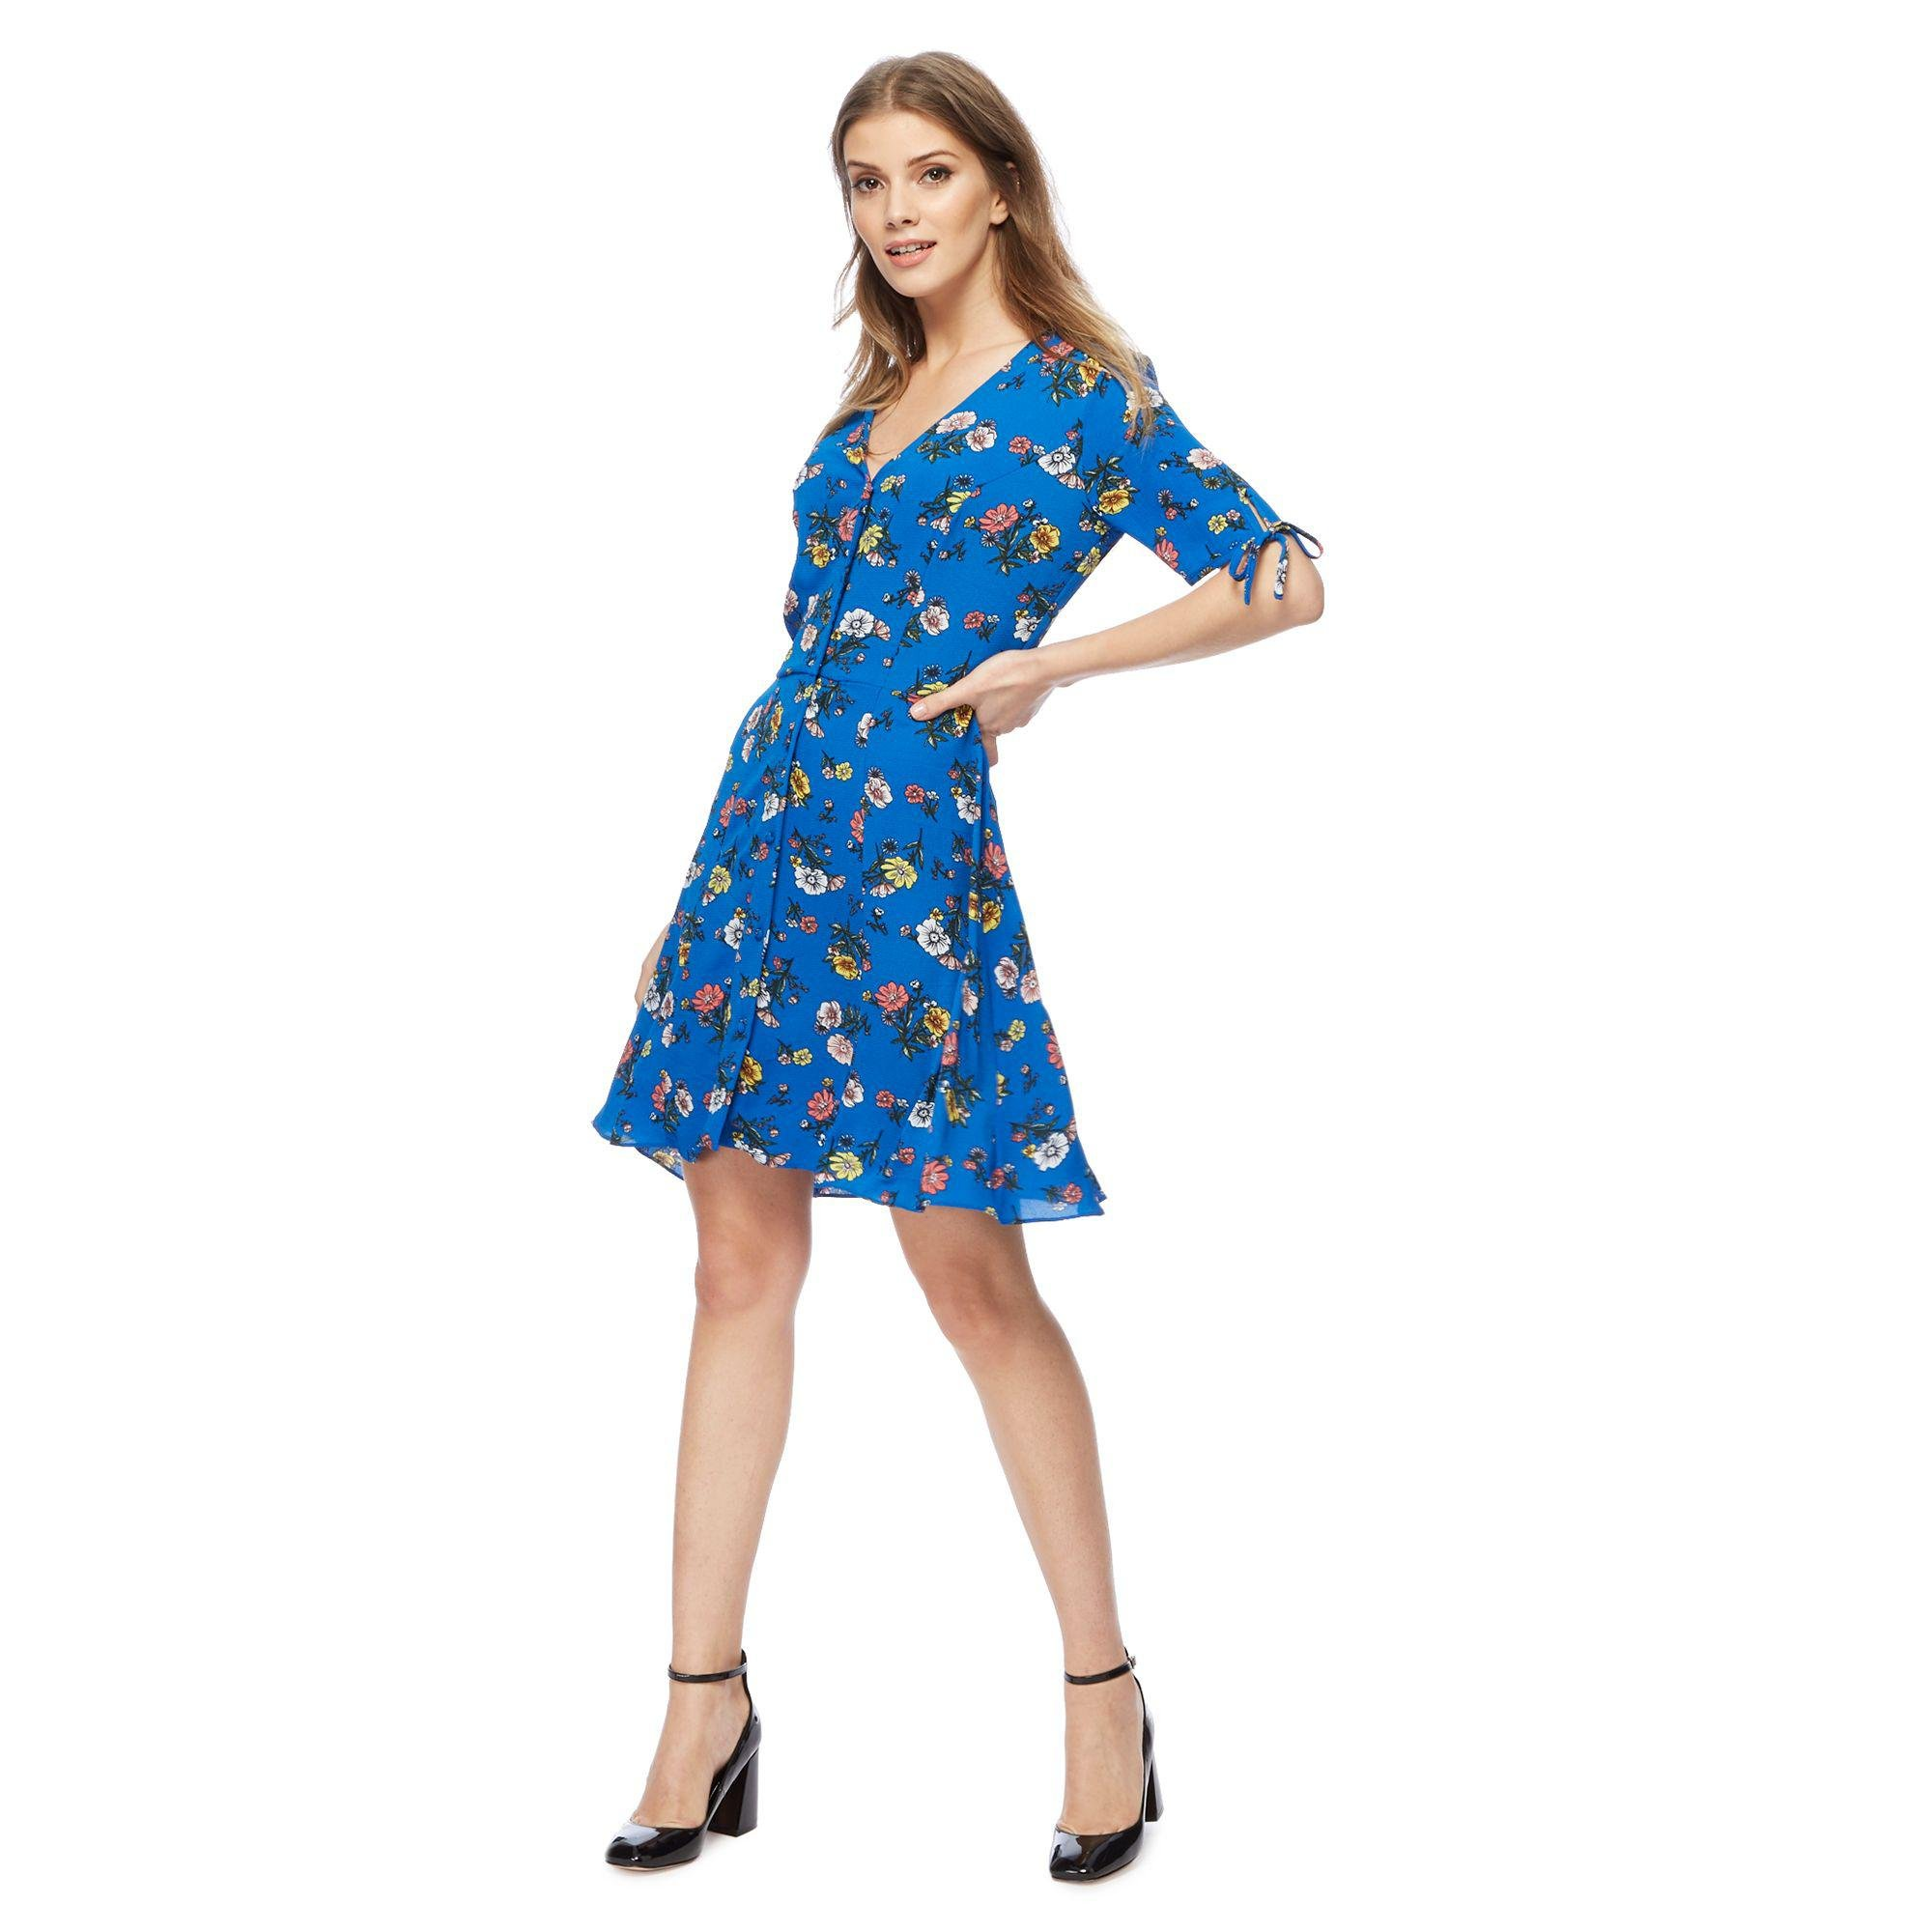 d6021f7774 Red Herring Blue Floral Print  madeline  V-neck Mini Tea Dress in ...